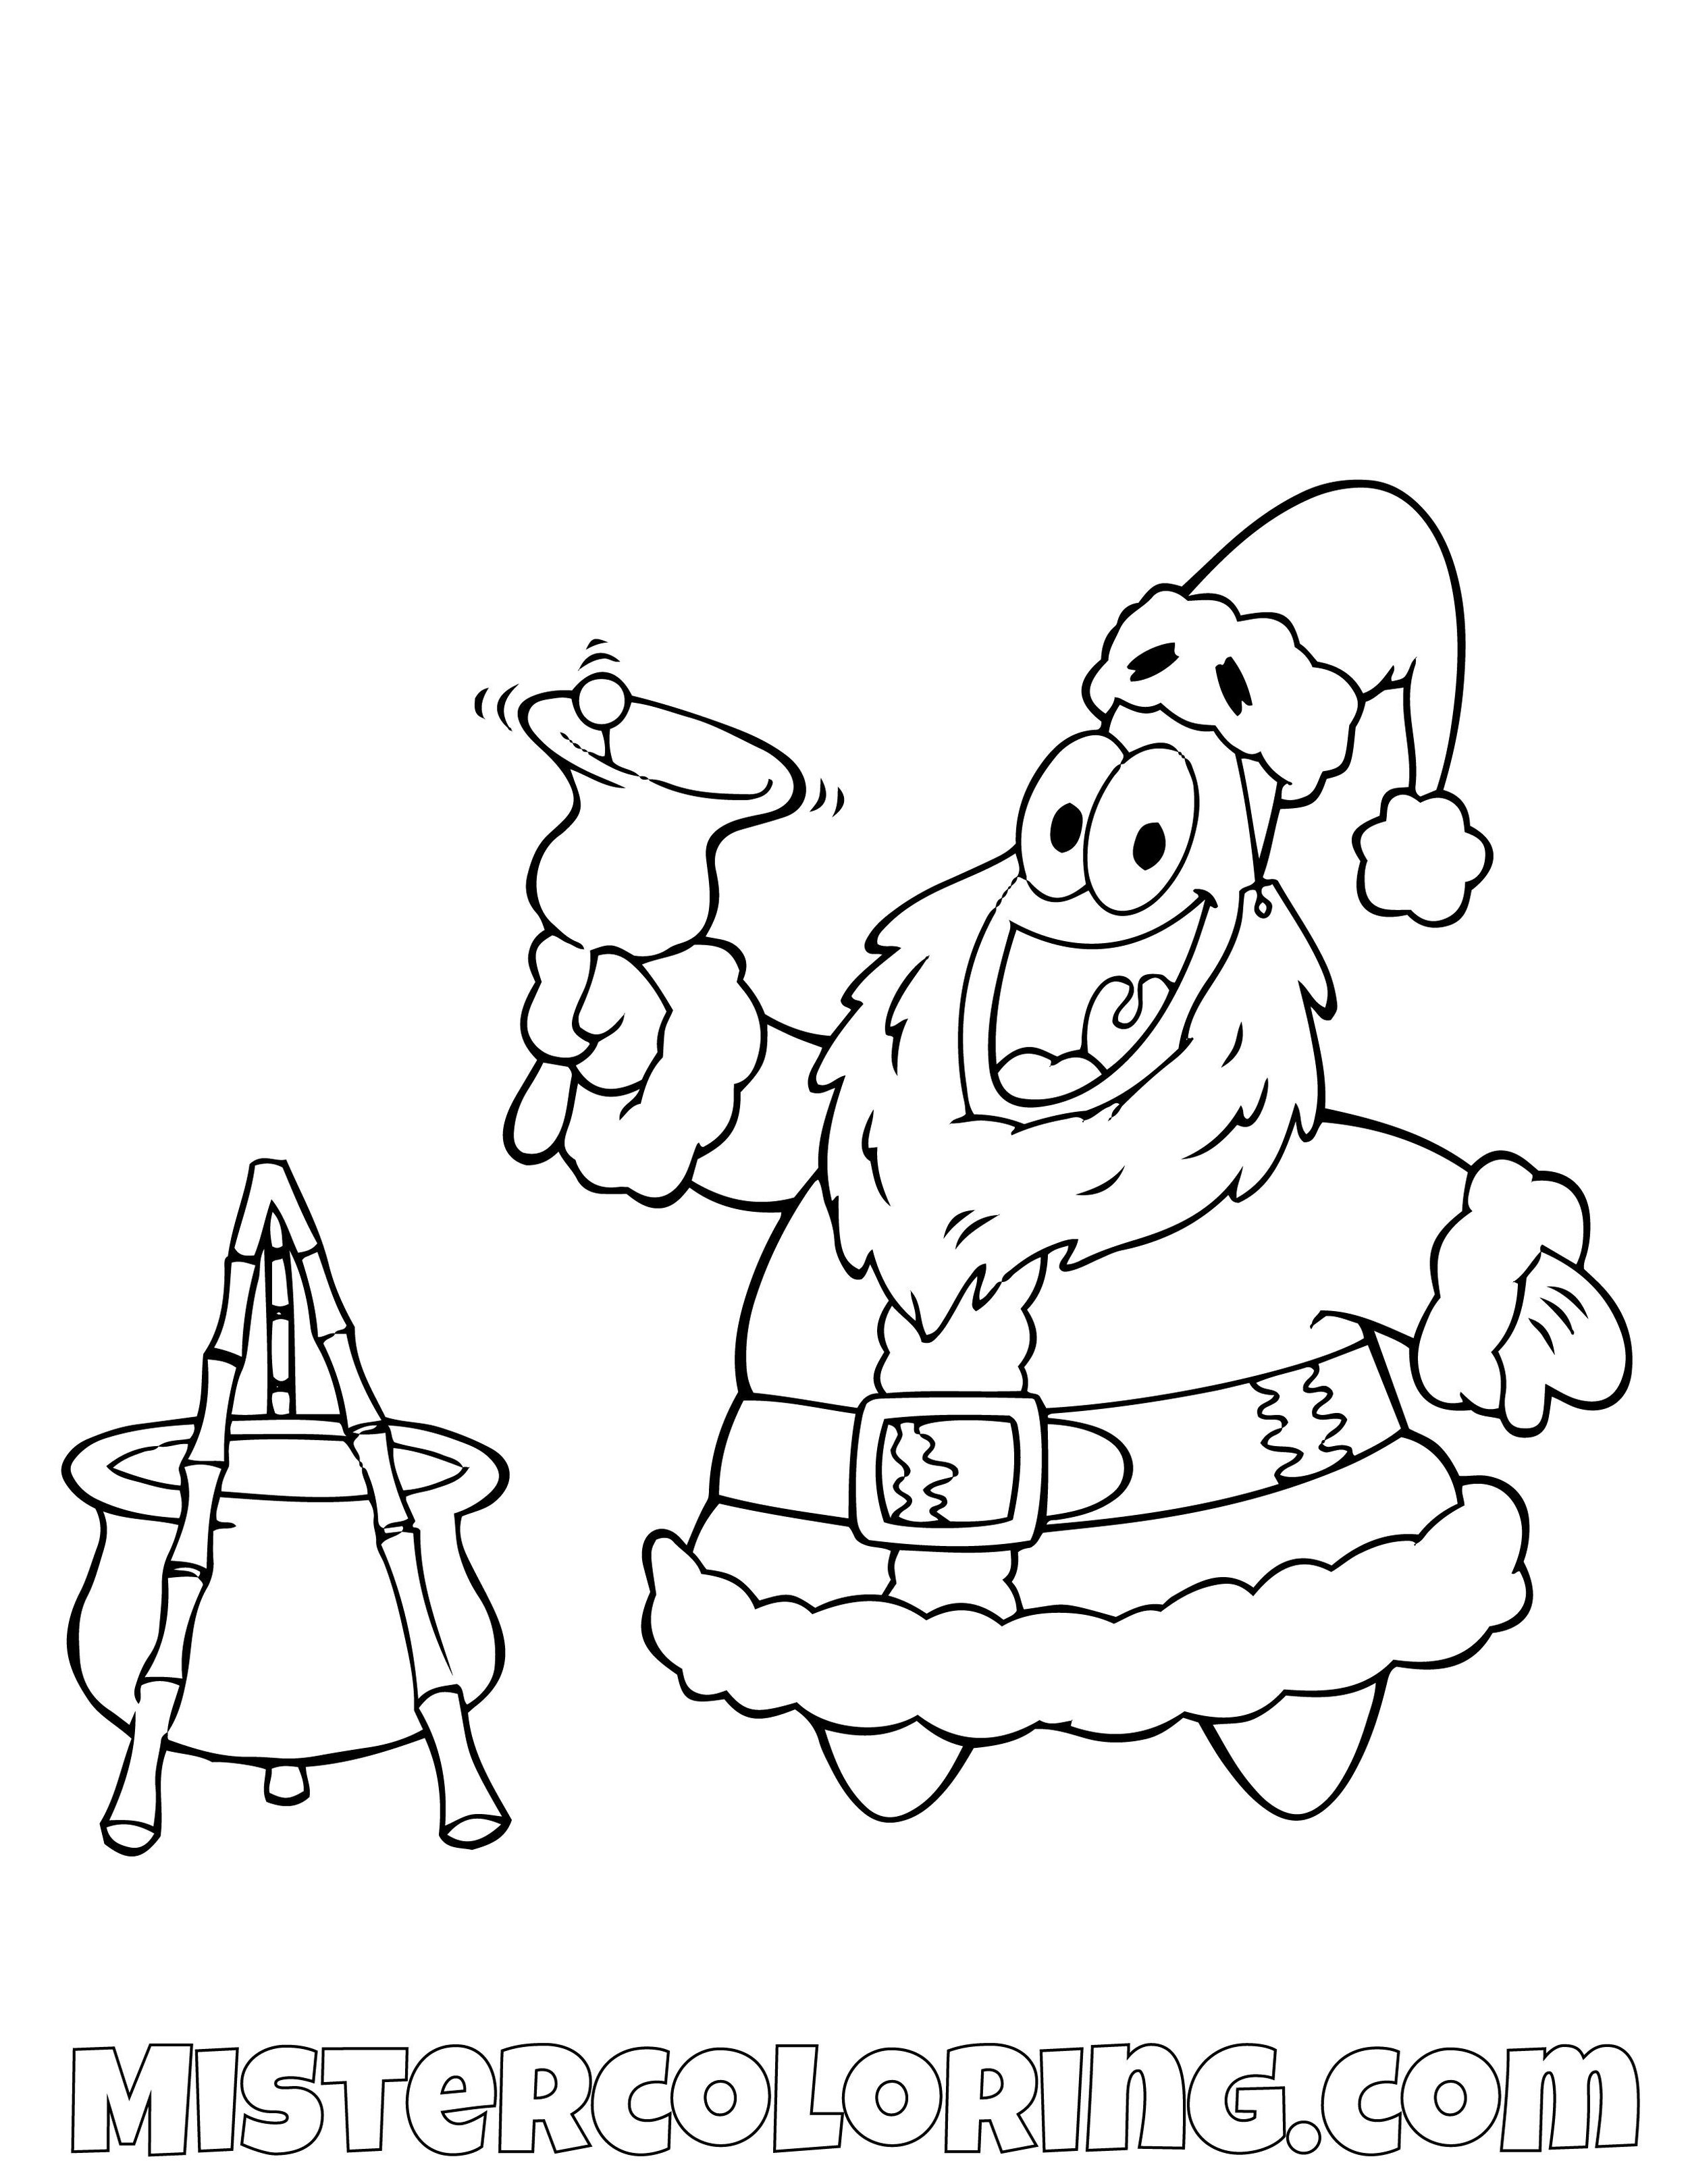 Patrick Star Coloring Pages - GetColoringPages.com   1294x1000